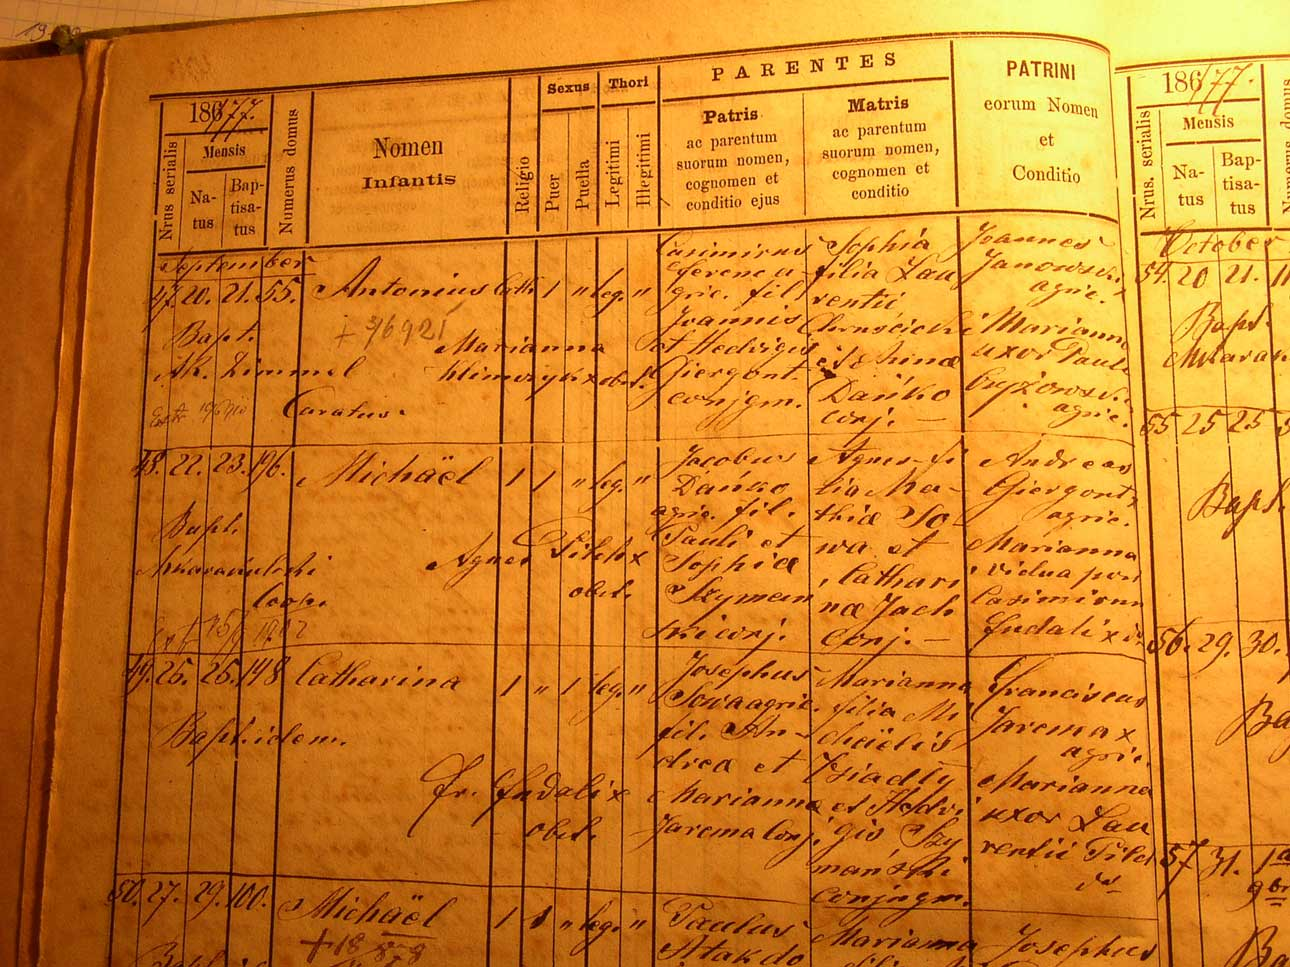 Baptismal Record from Galicia